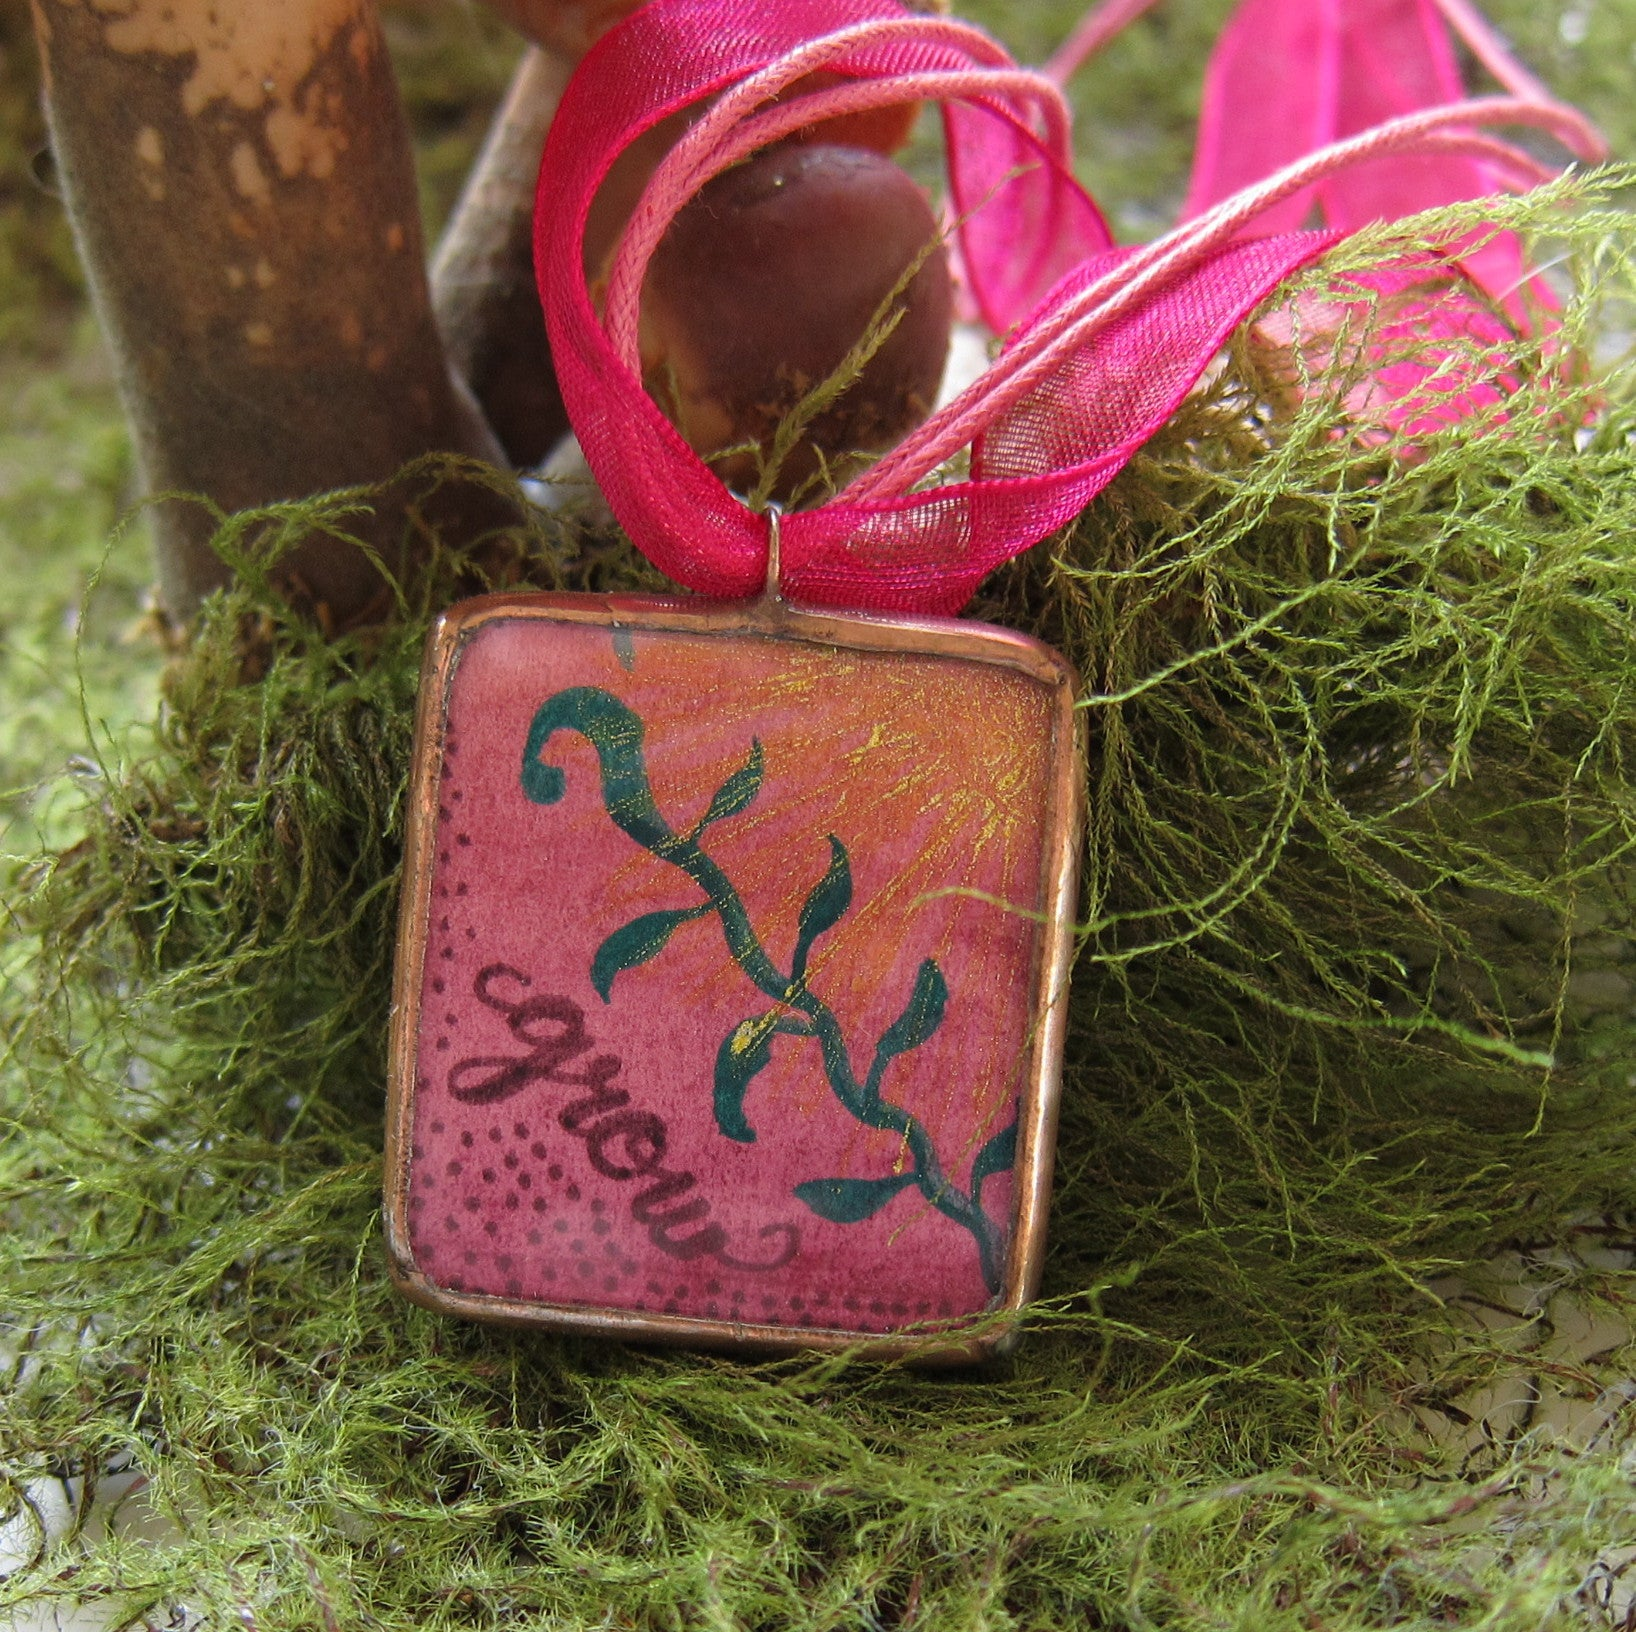 Soldered glass pendant necklace with leaf artwork